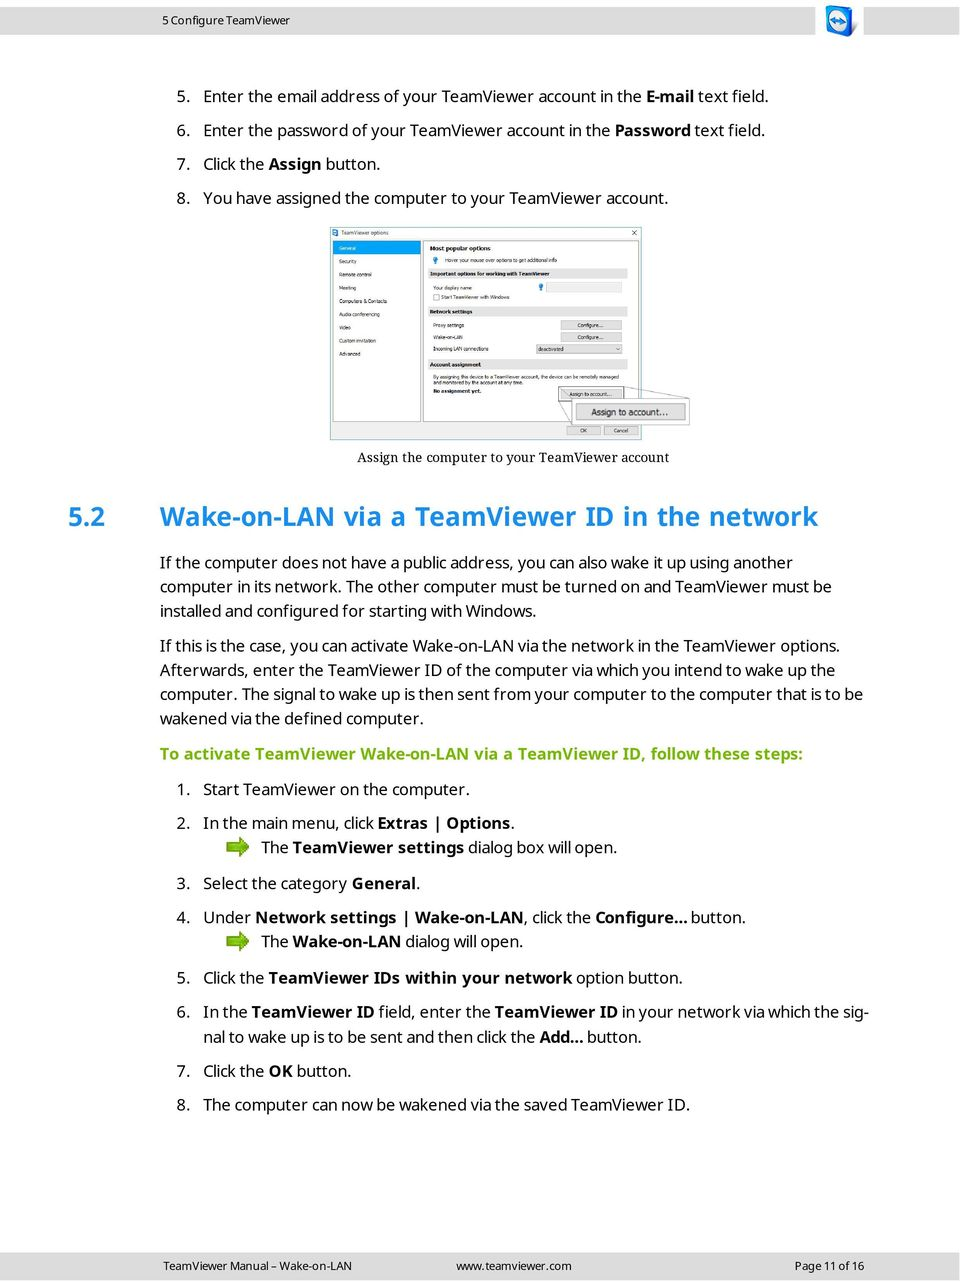 TeamViewer Manual Wake-on-LAN - PDF